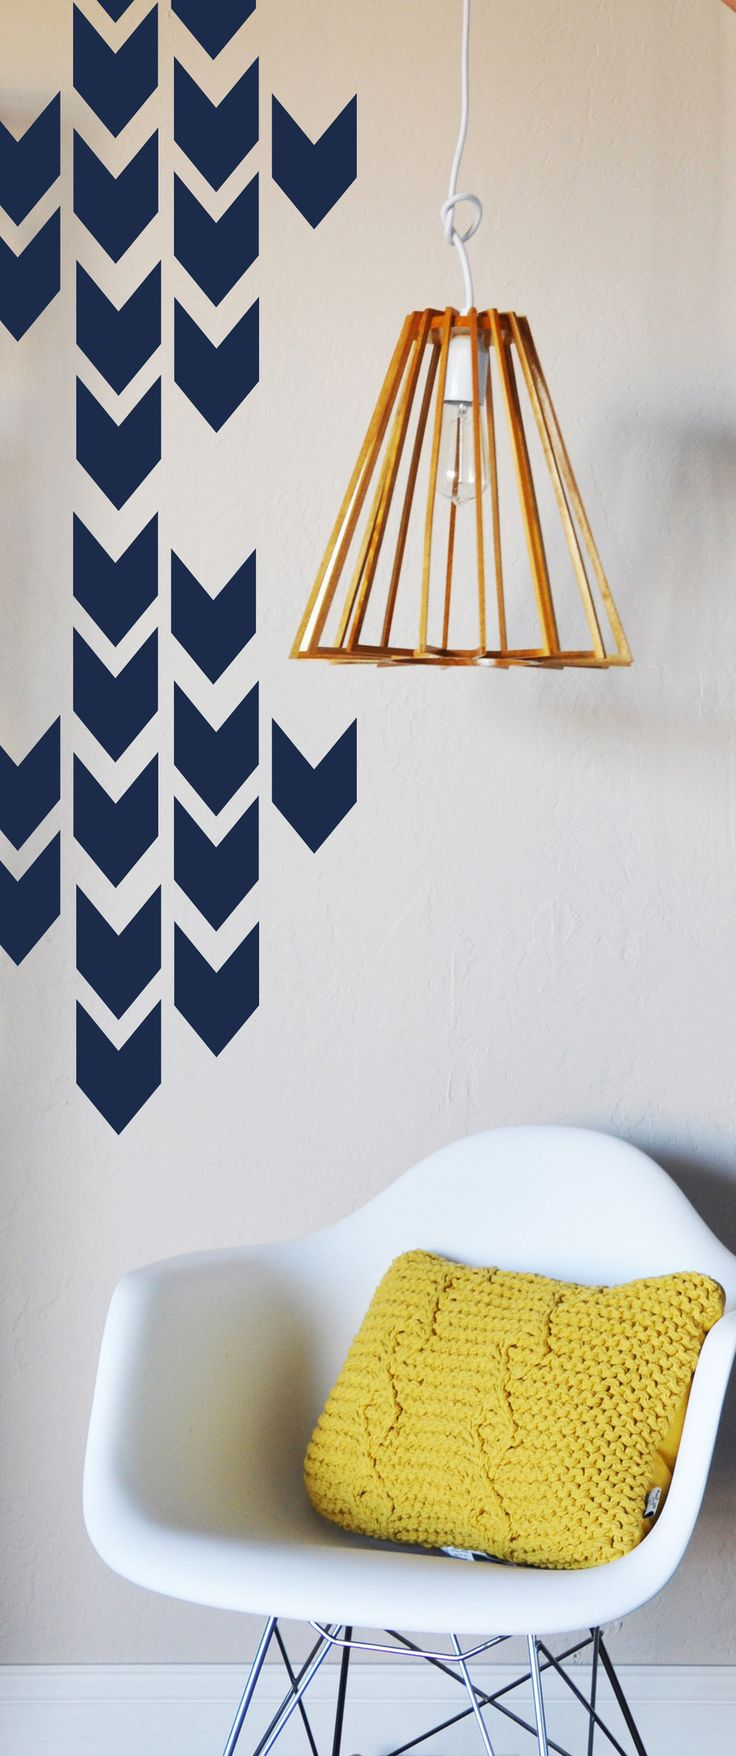 "Navajo Arrows Wall Decal Modern Wall Art - Fully removable and reusable wall decals that will brighten and add character to any room. - Includes 40 individual arrows, each 4.5"" x 2.5"". - 100% polyeste"